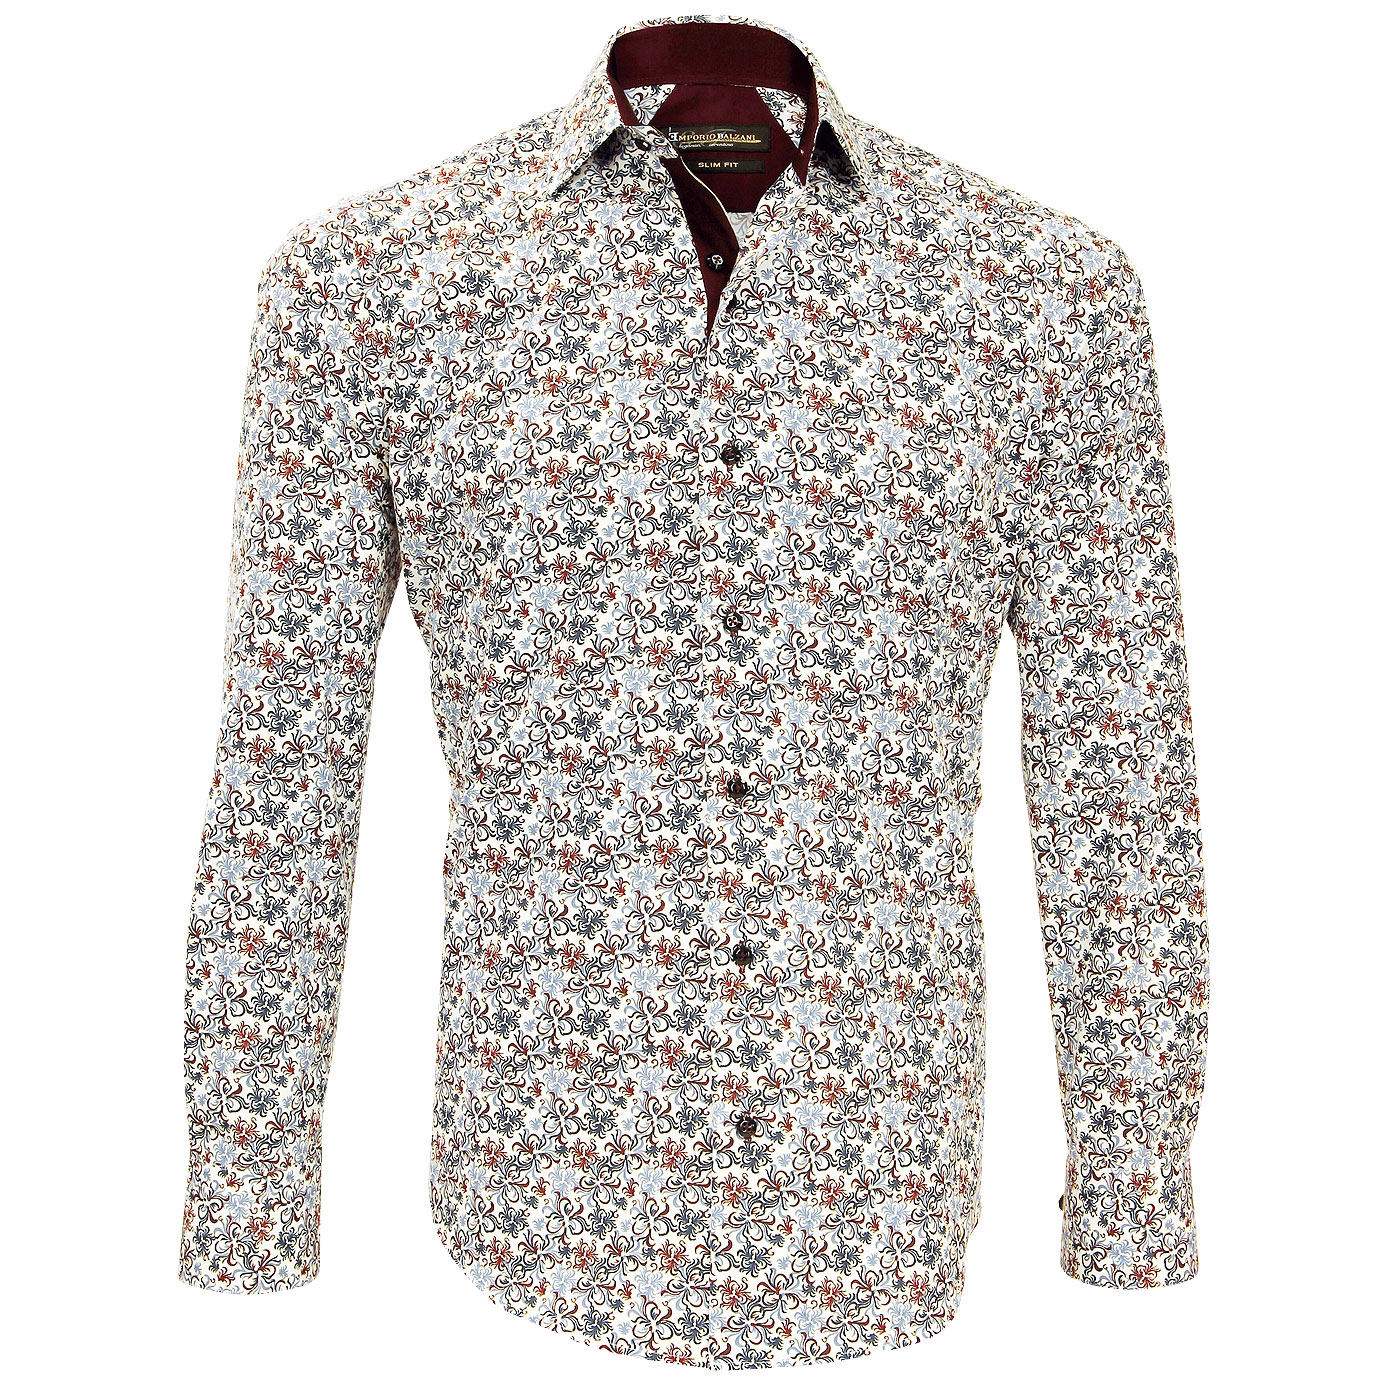 Offer yourselves high-quality Italian shirts with webmenshirts.com